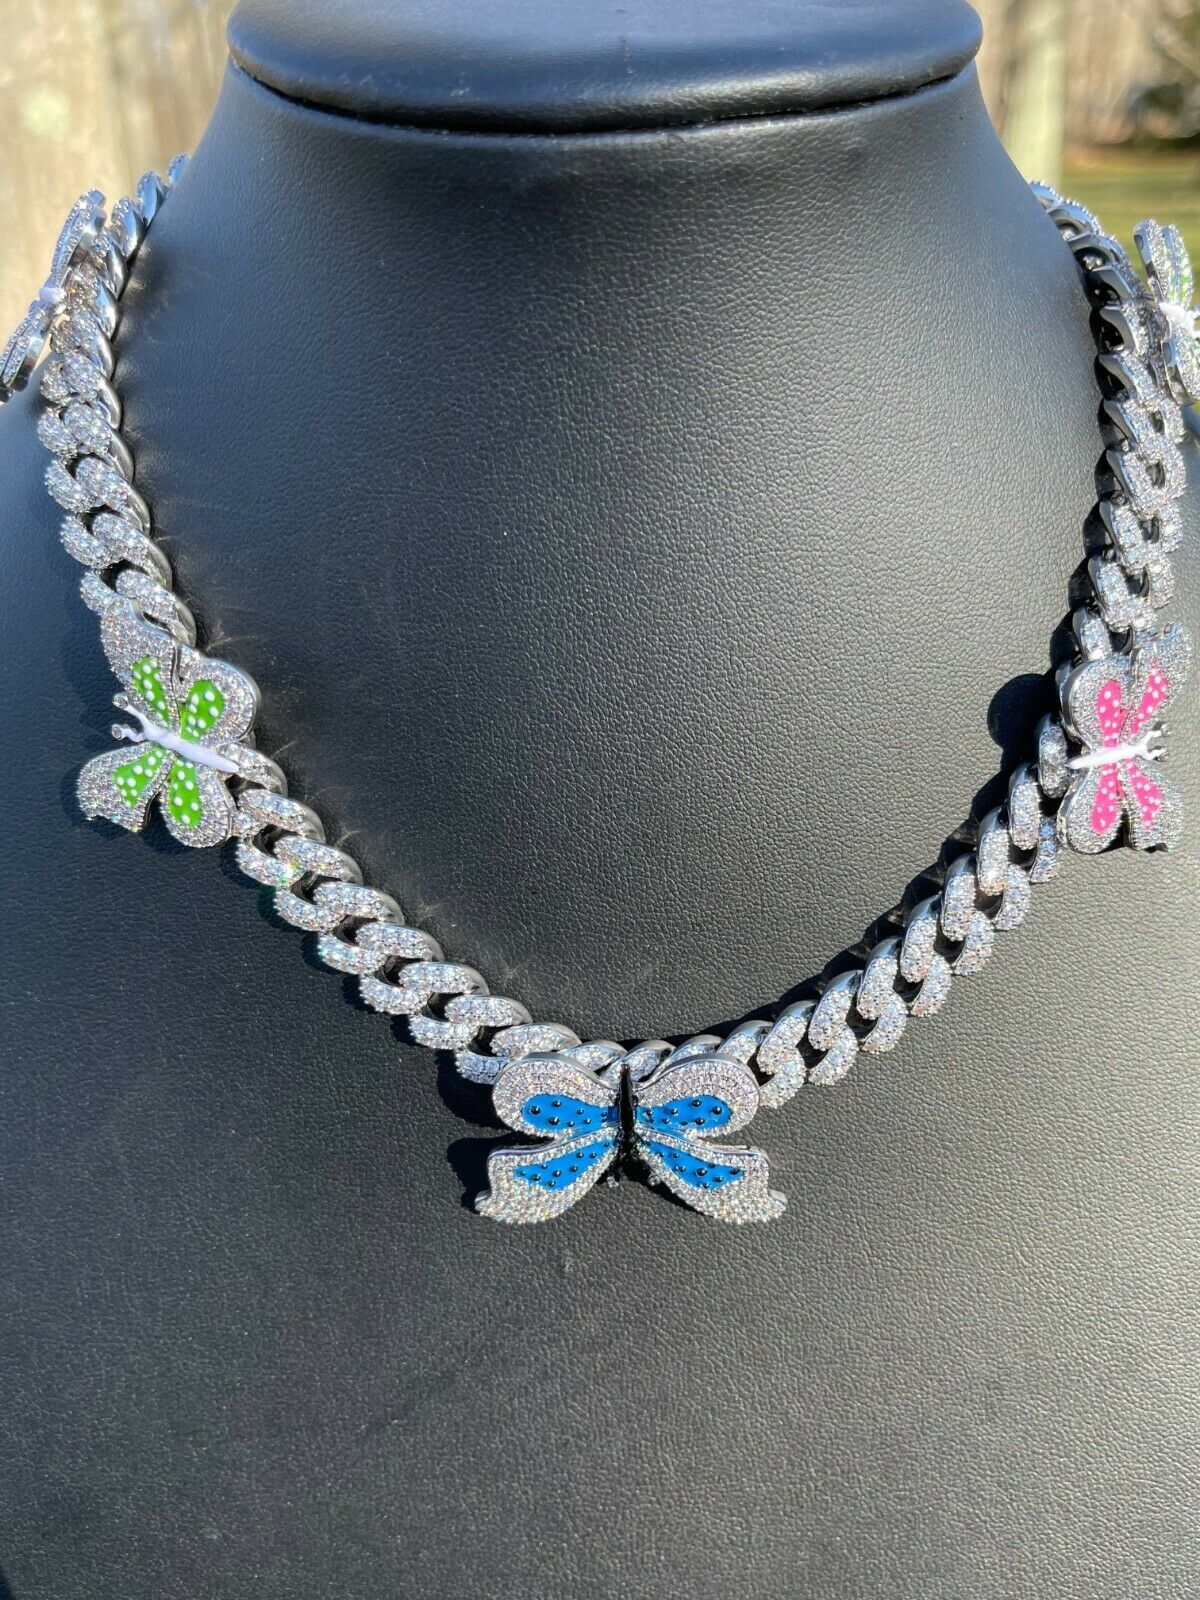 Real Hip Hop 12mm Miami Cuban Chain Choker Necklace Butterfly Iced Silver Choker 3